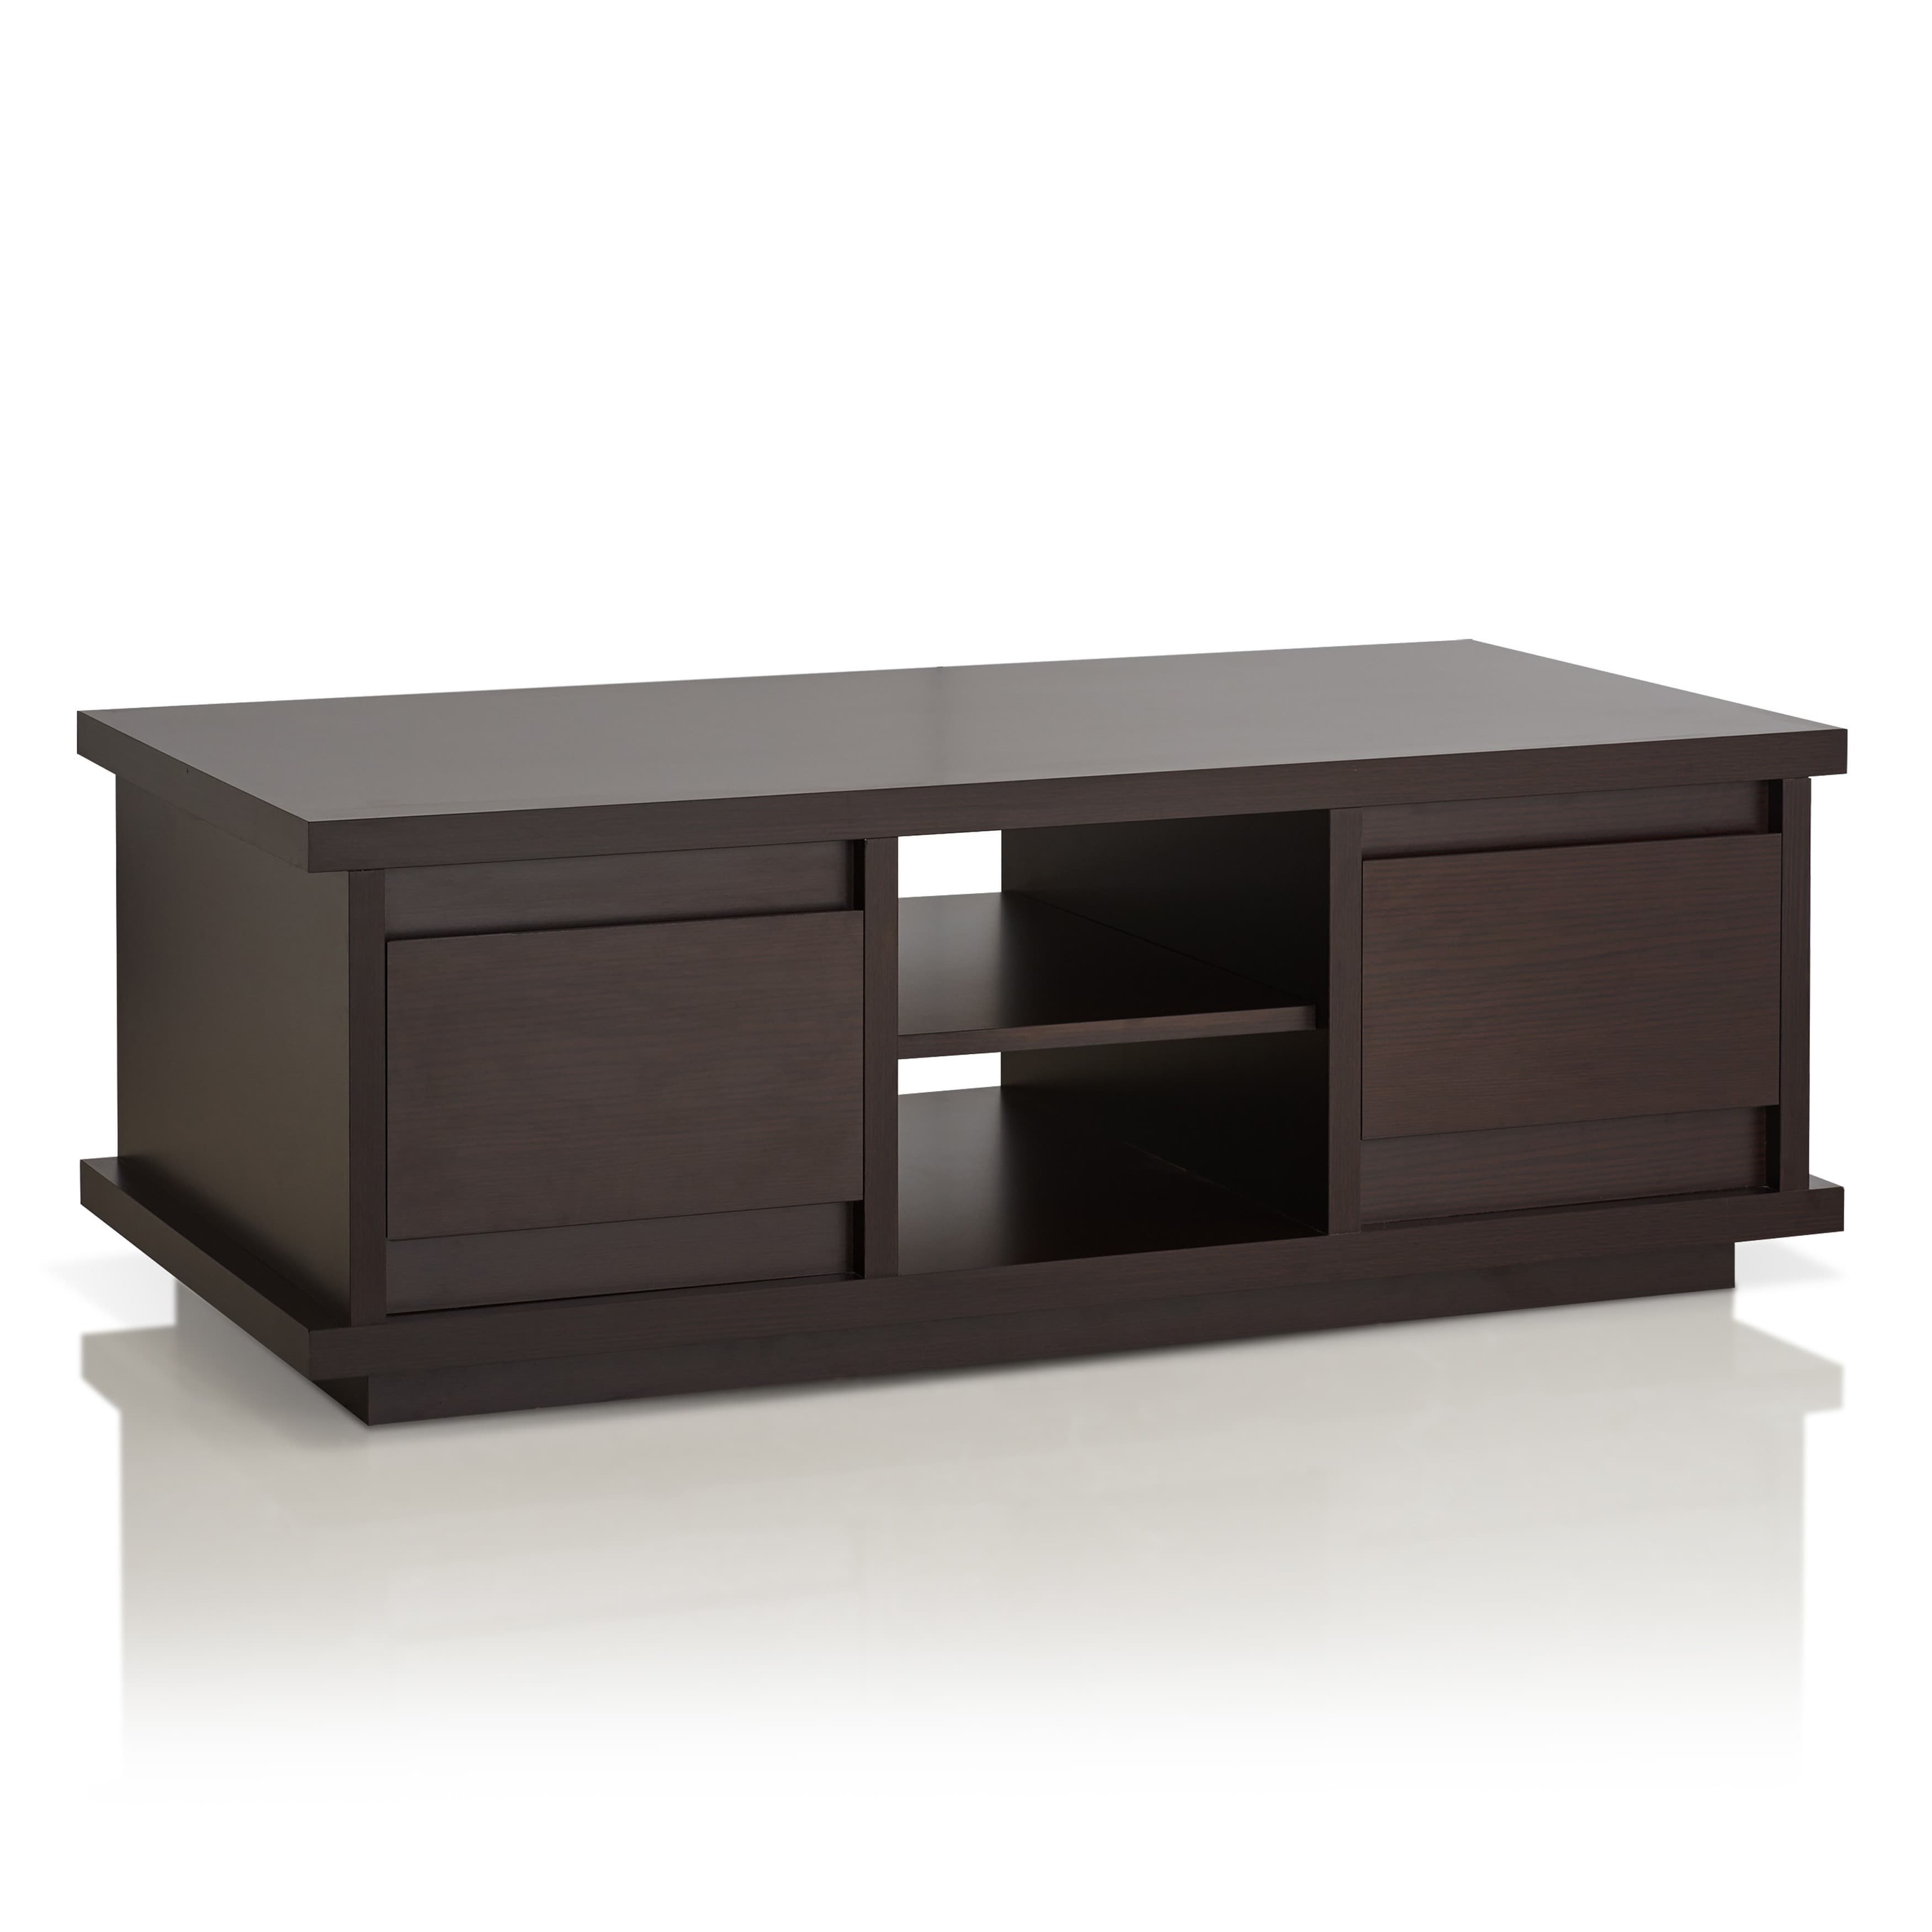 Furniture Of America Irvine Contemporary Walnut Coffee Table